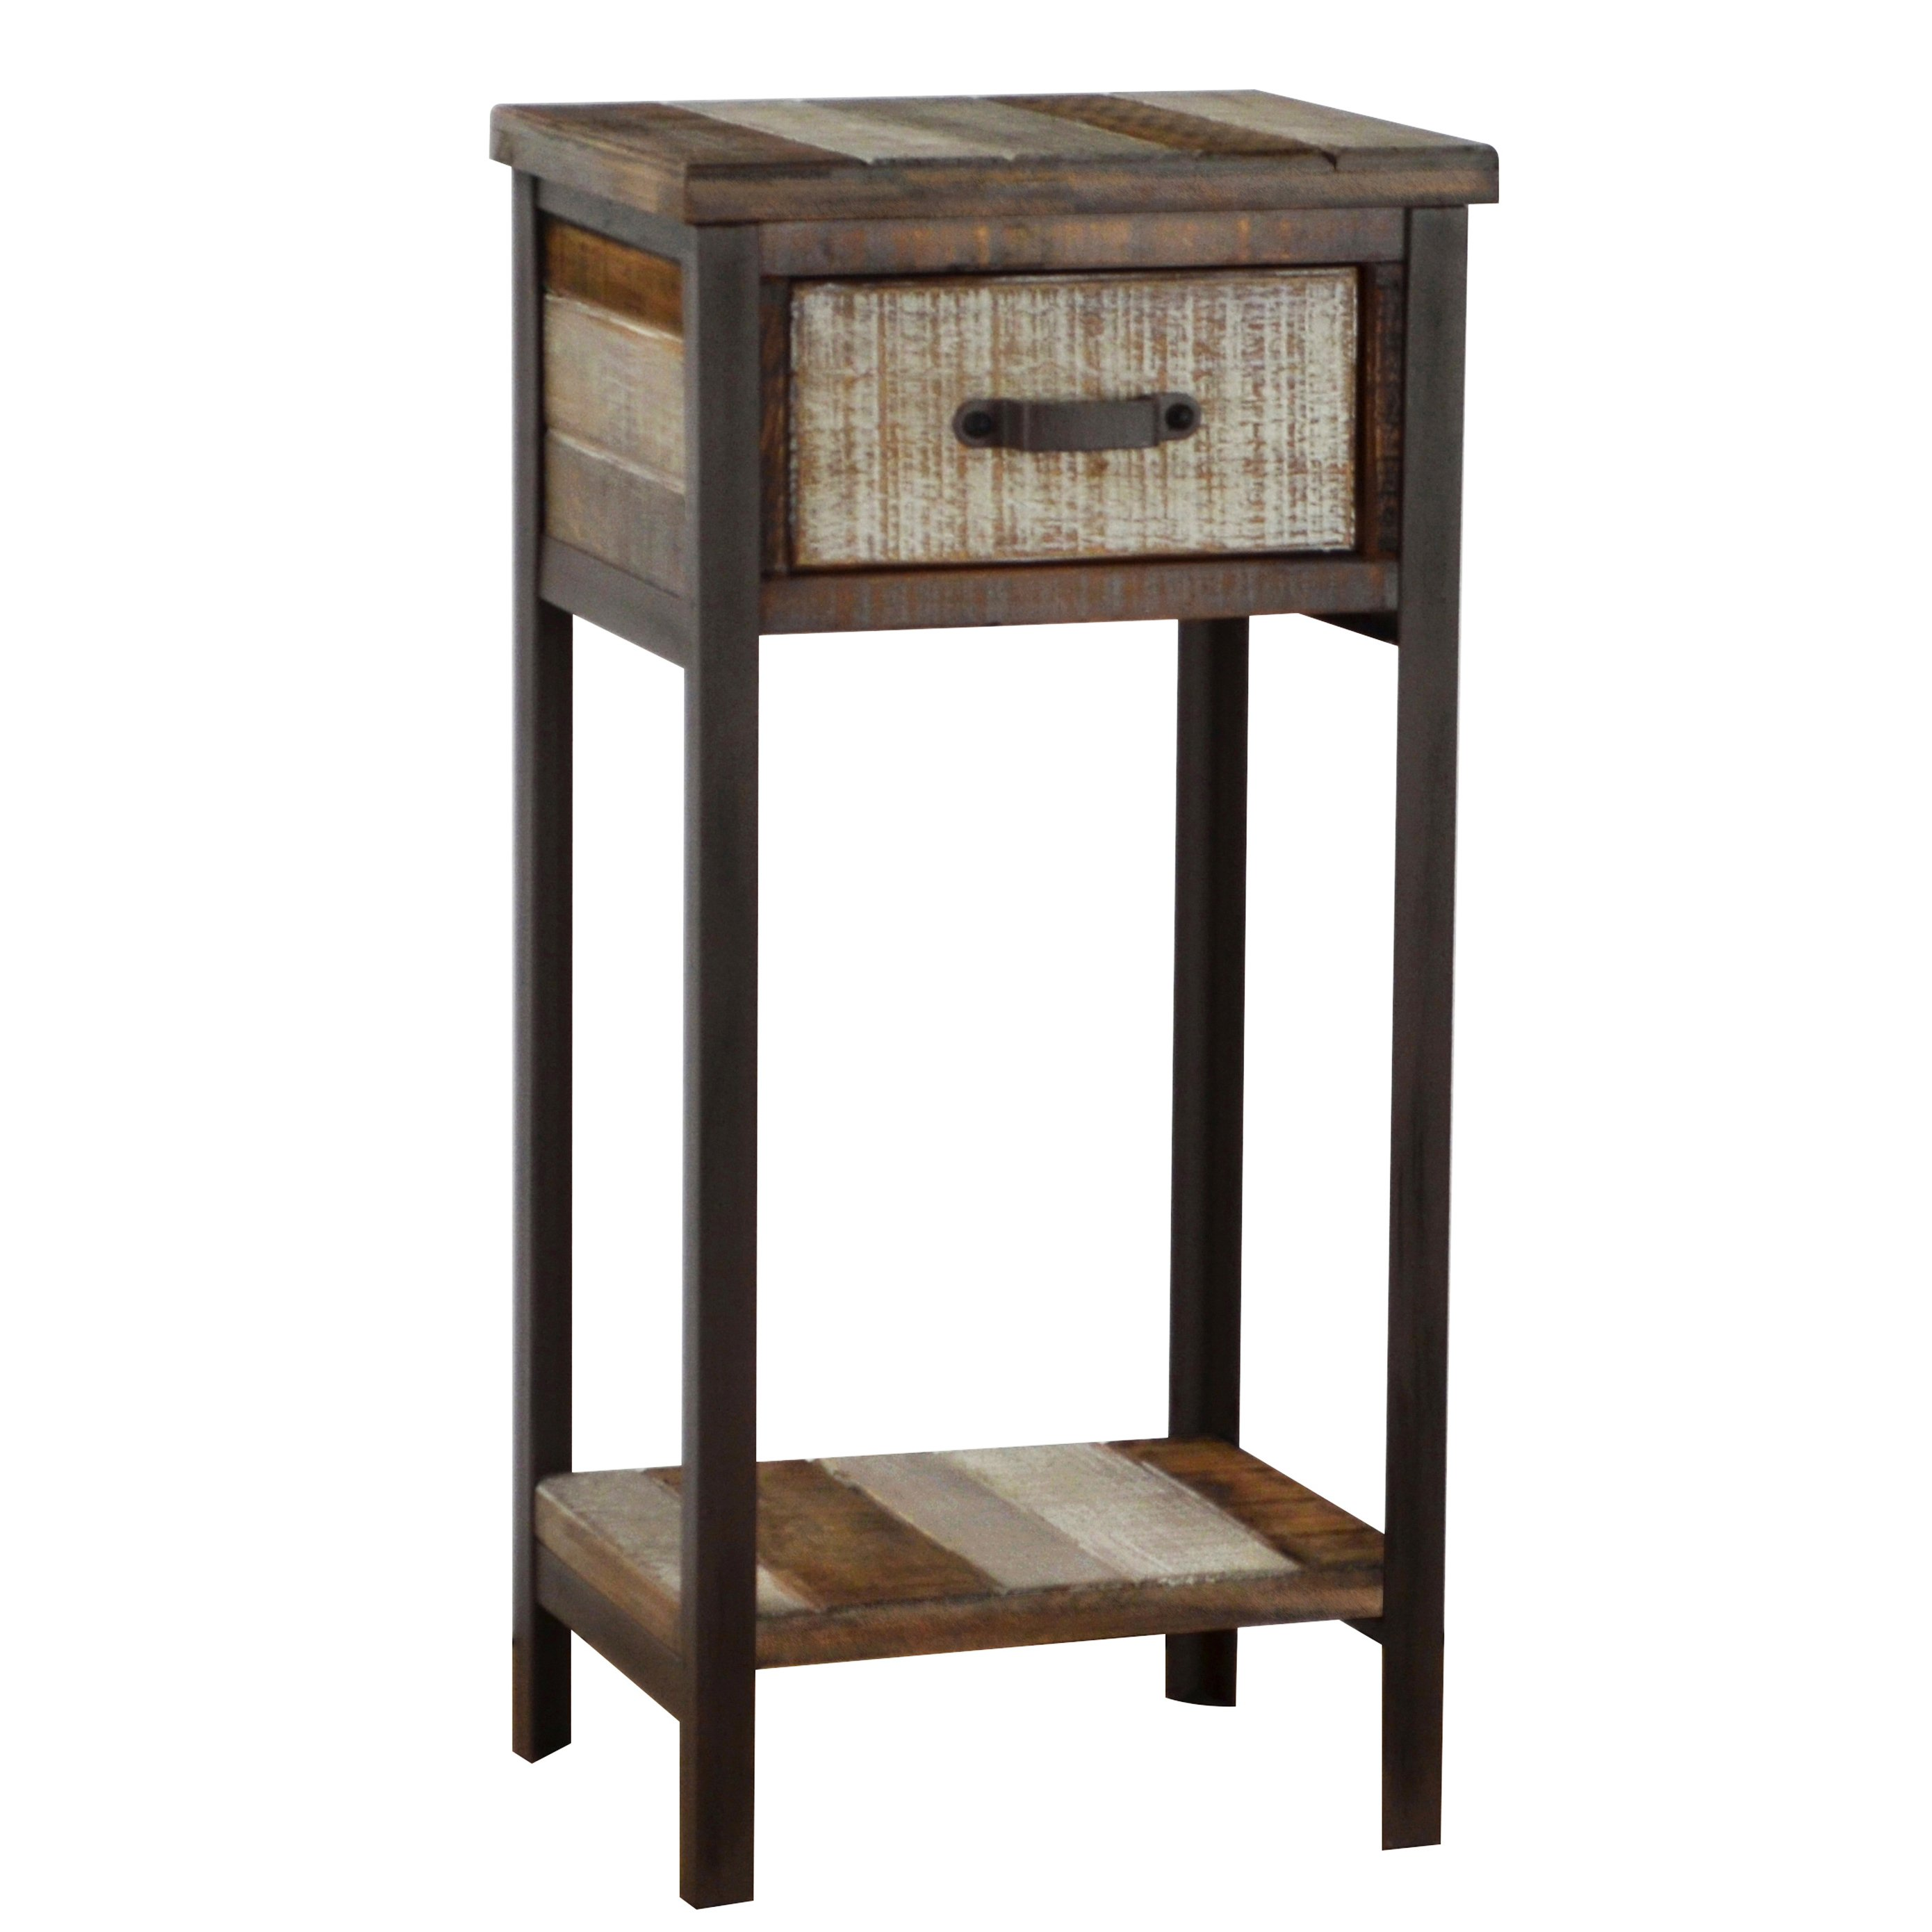 carbon loft scott wood accent table cabinet free shipping pine canopy goosefoot today target wall mirrors kitchen work pottery barn coffee decor stacking end tables pearl drum